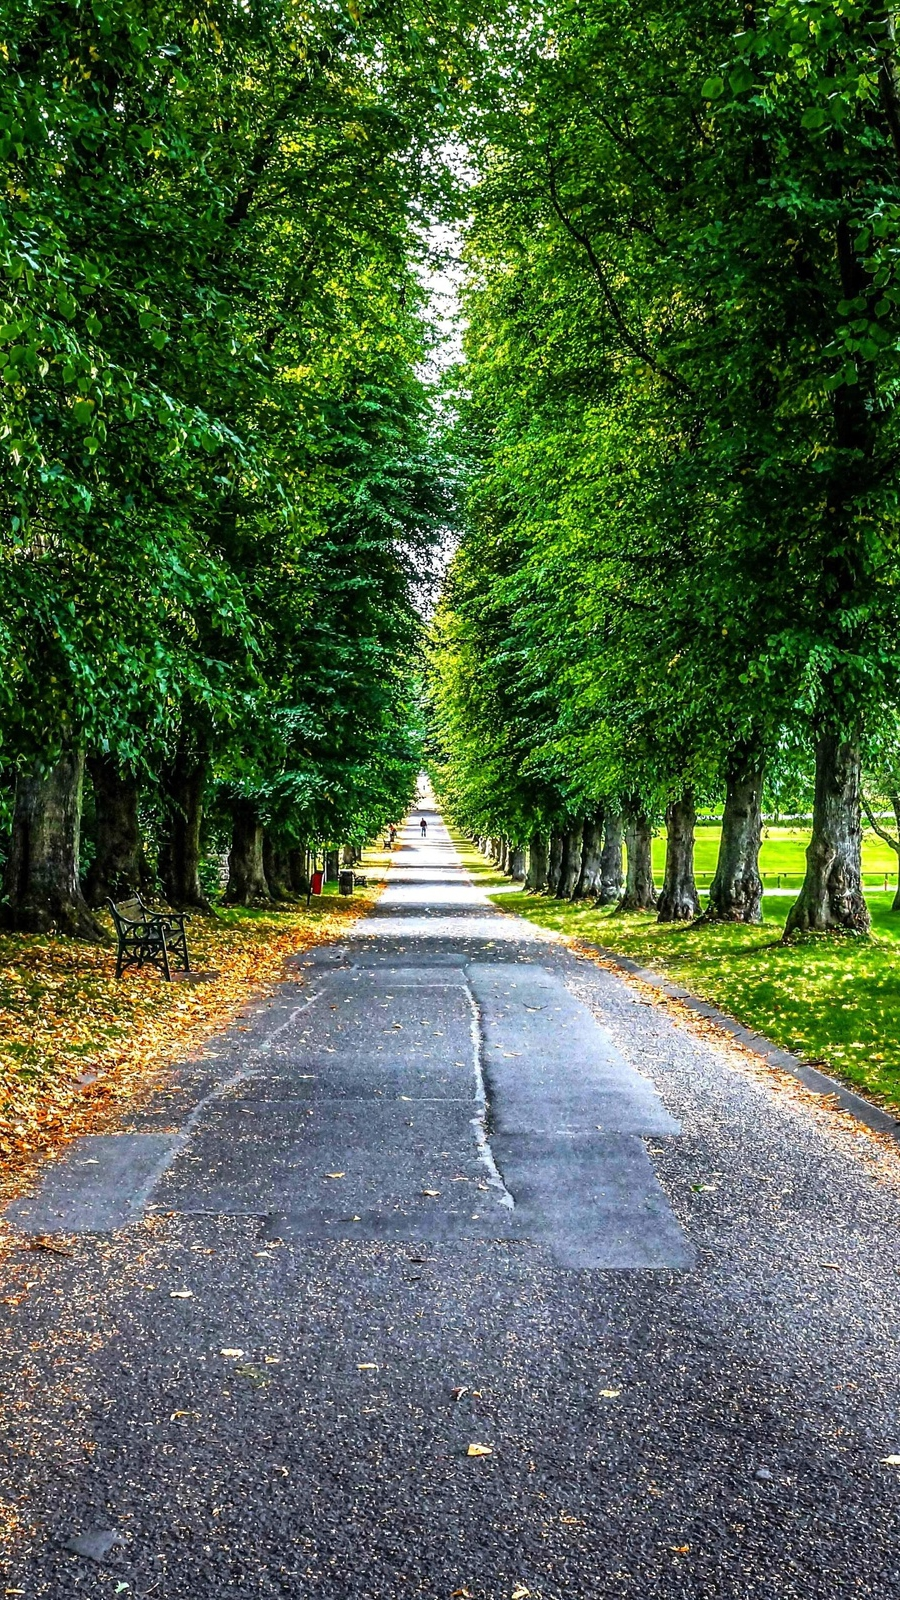 park-trees-road-landscape-iPhone-Wallpaper - iPhone Wallpapers